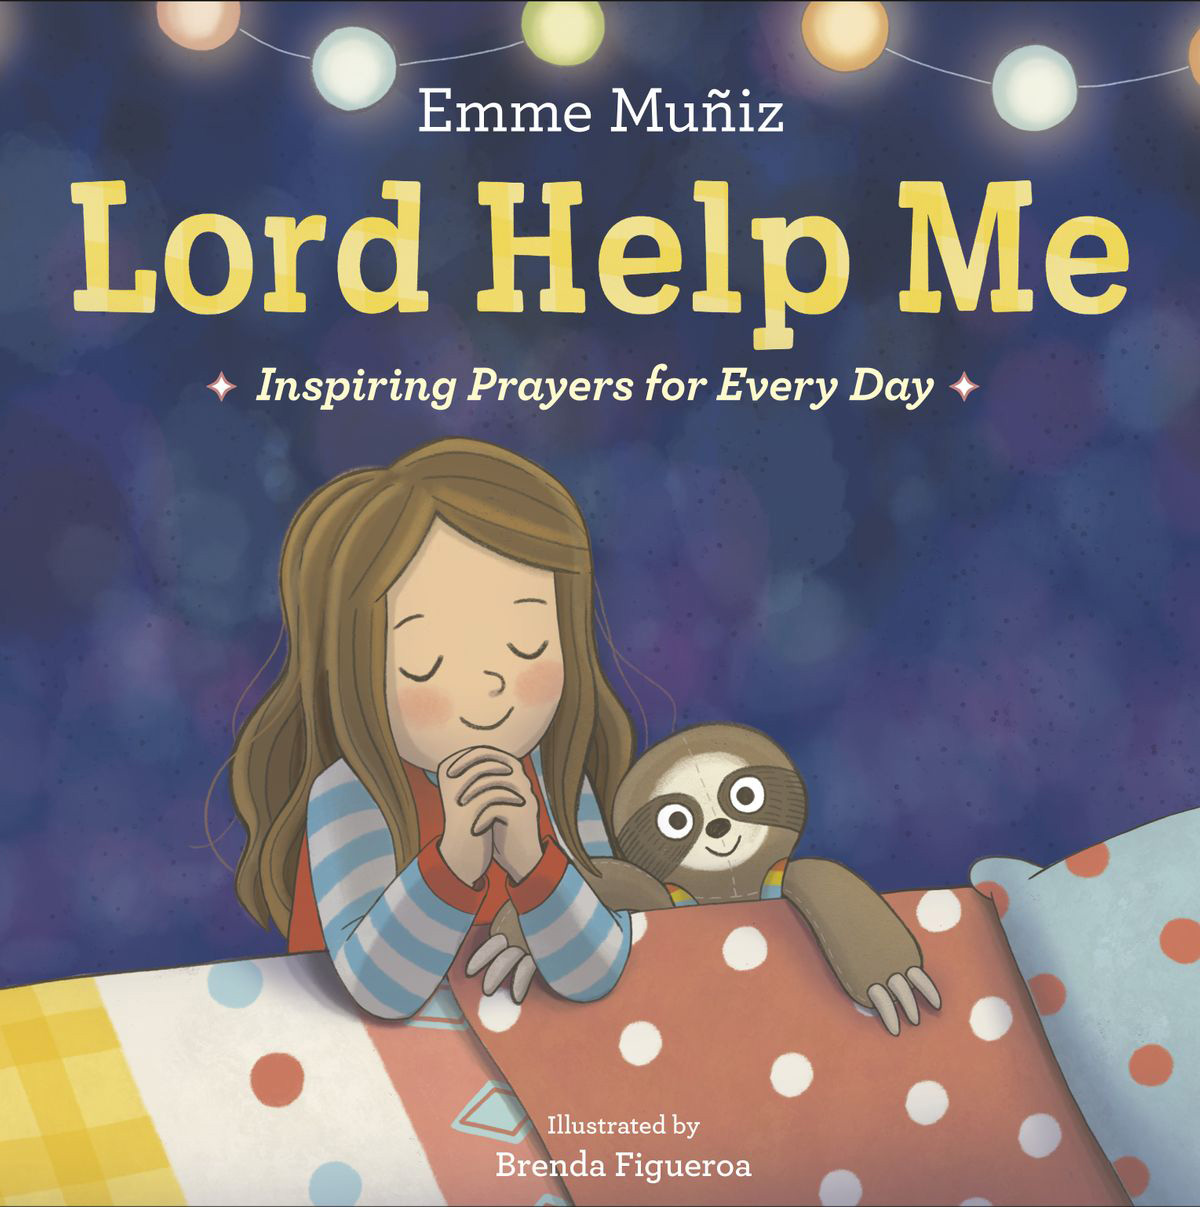 Lord Help Me INSPIRING PRAYERS FOR EVERY DAY By EMME MUÑIZ